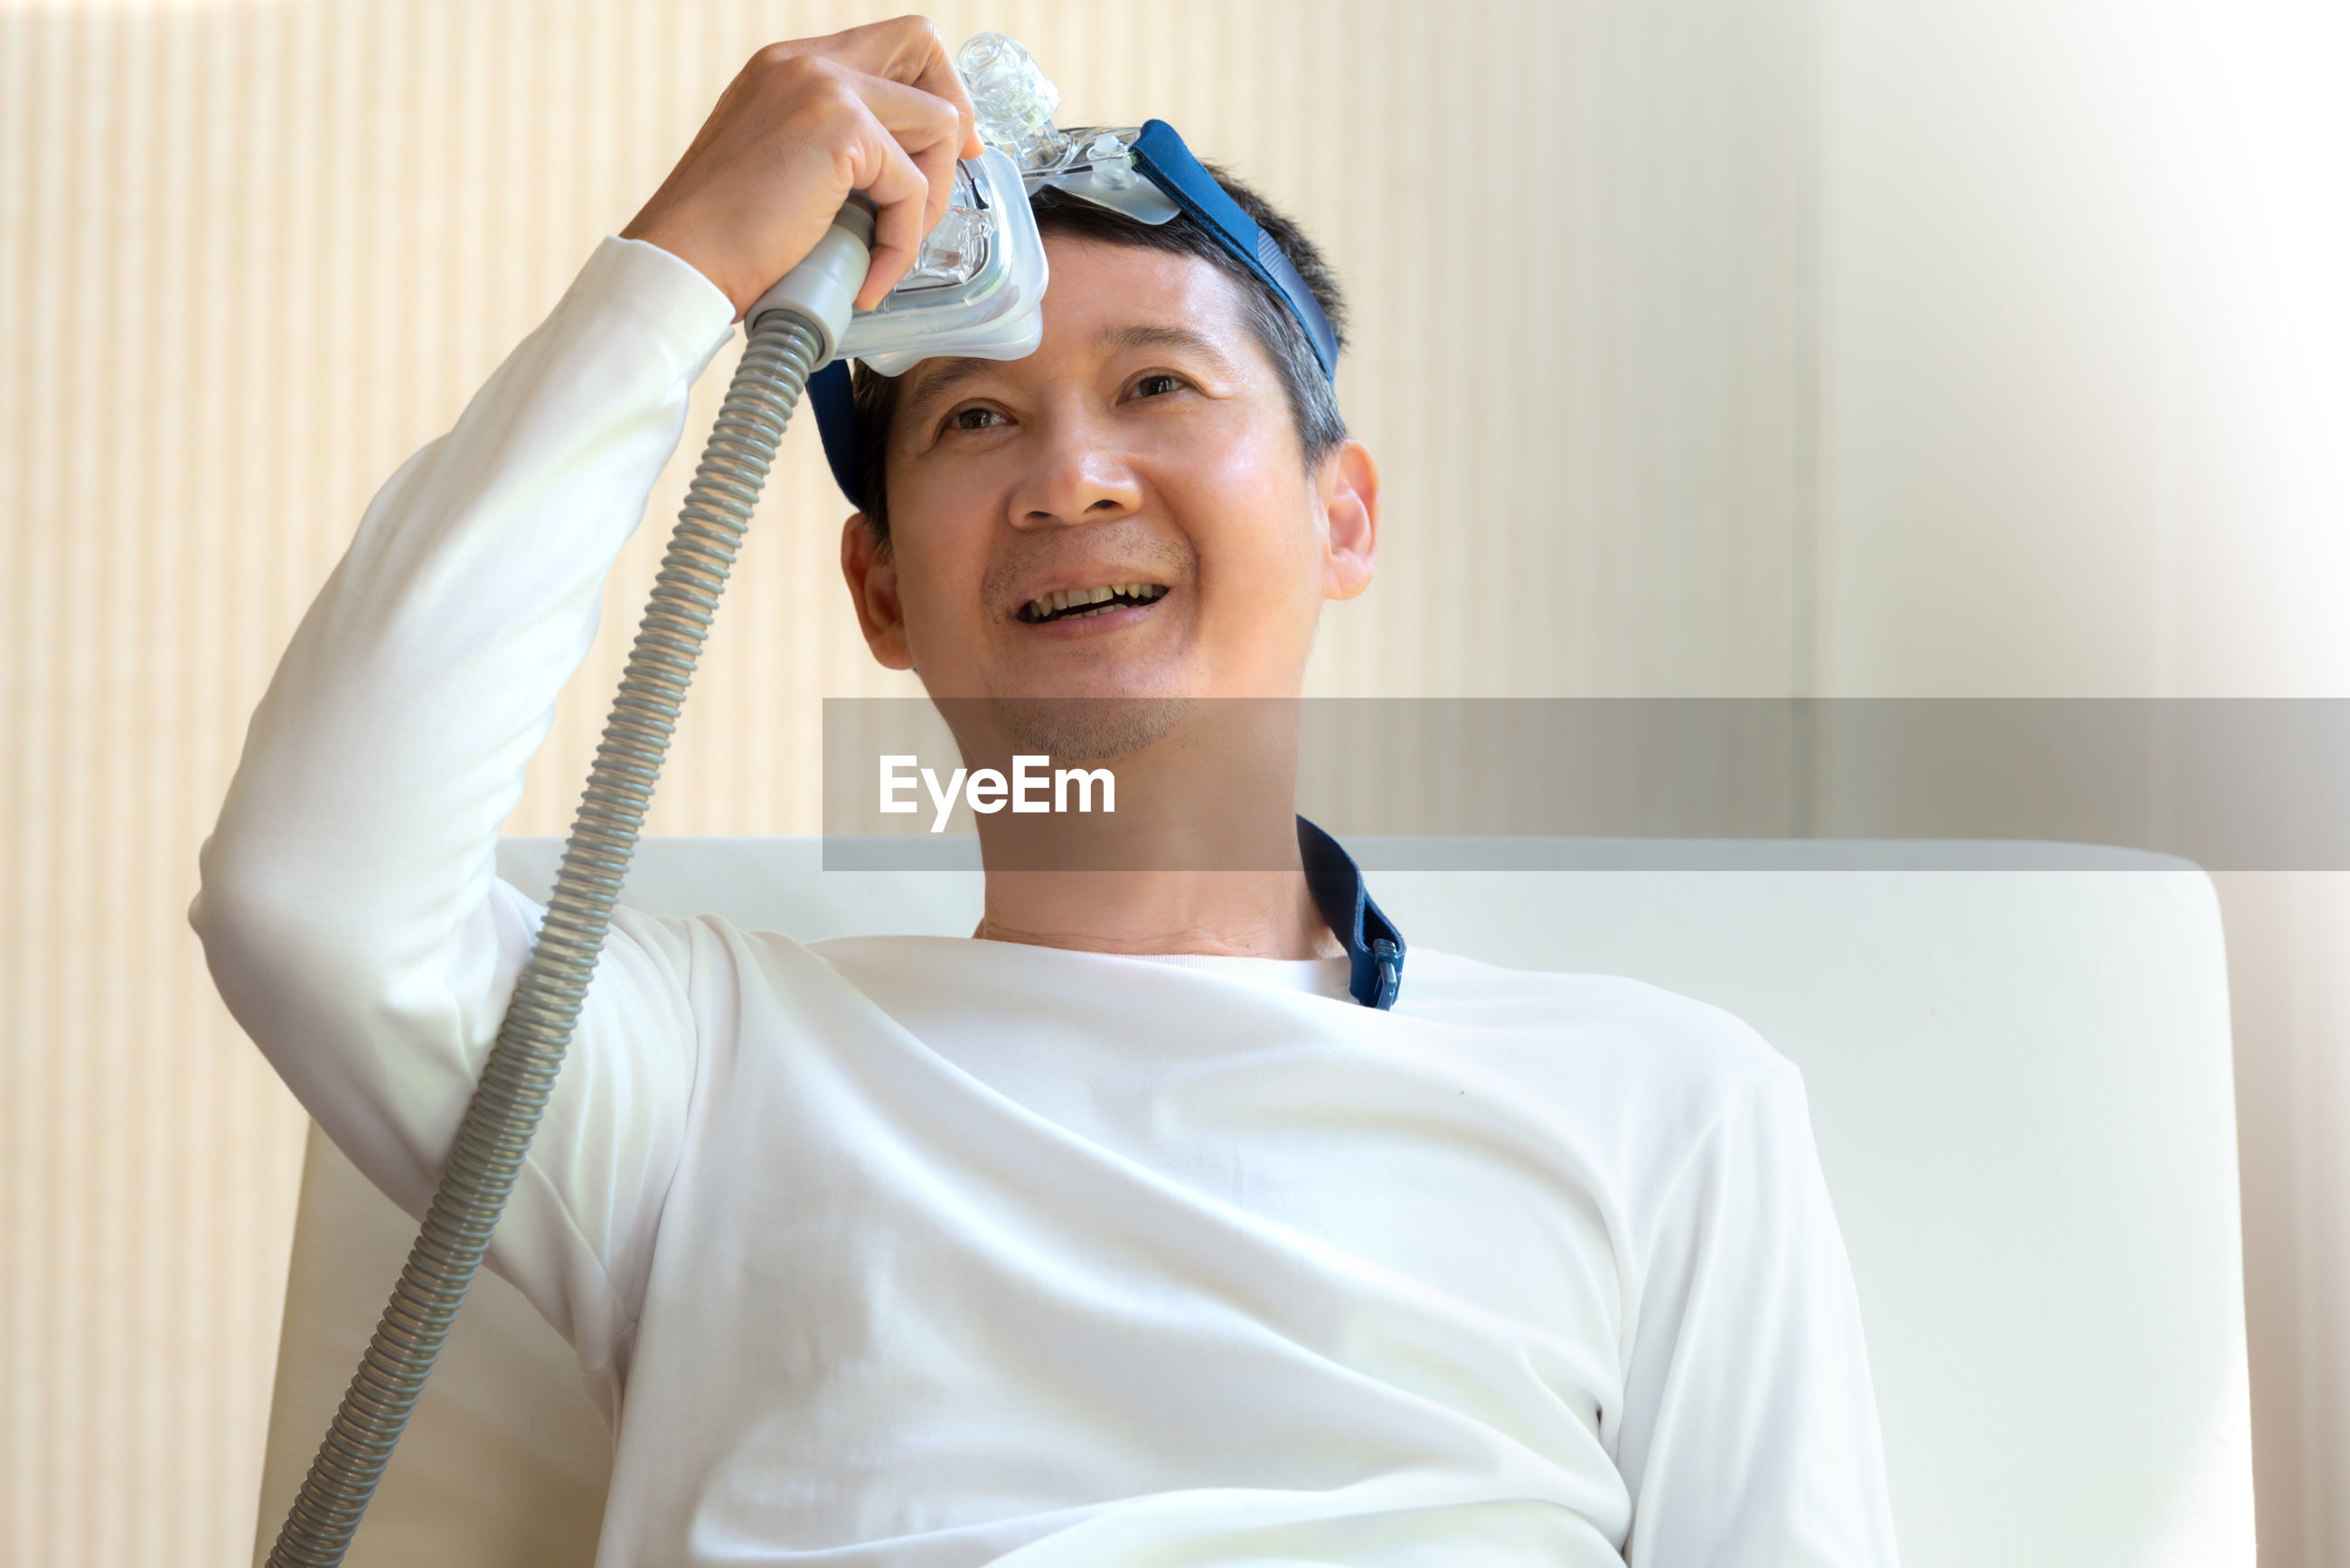 Male patient with medical oxygen equipment relaxing at hospital